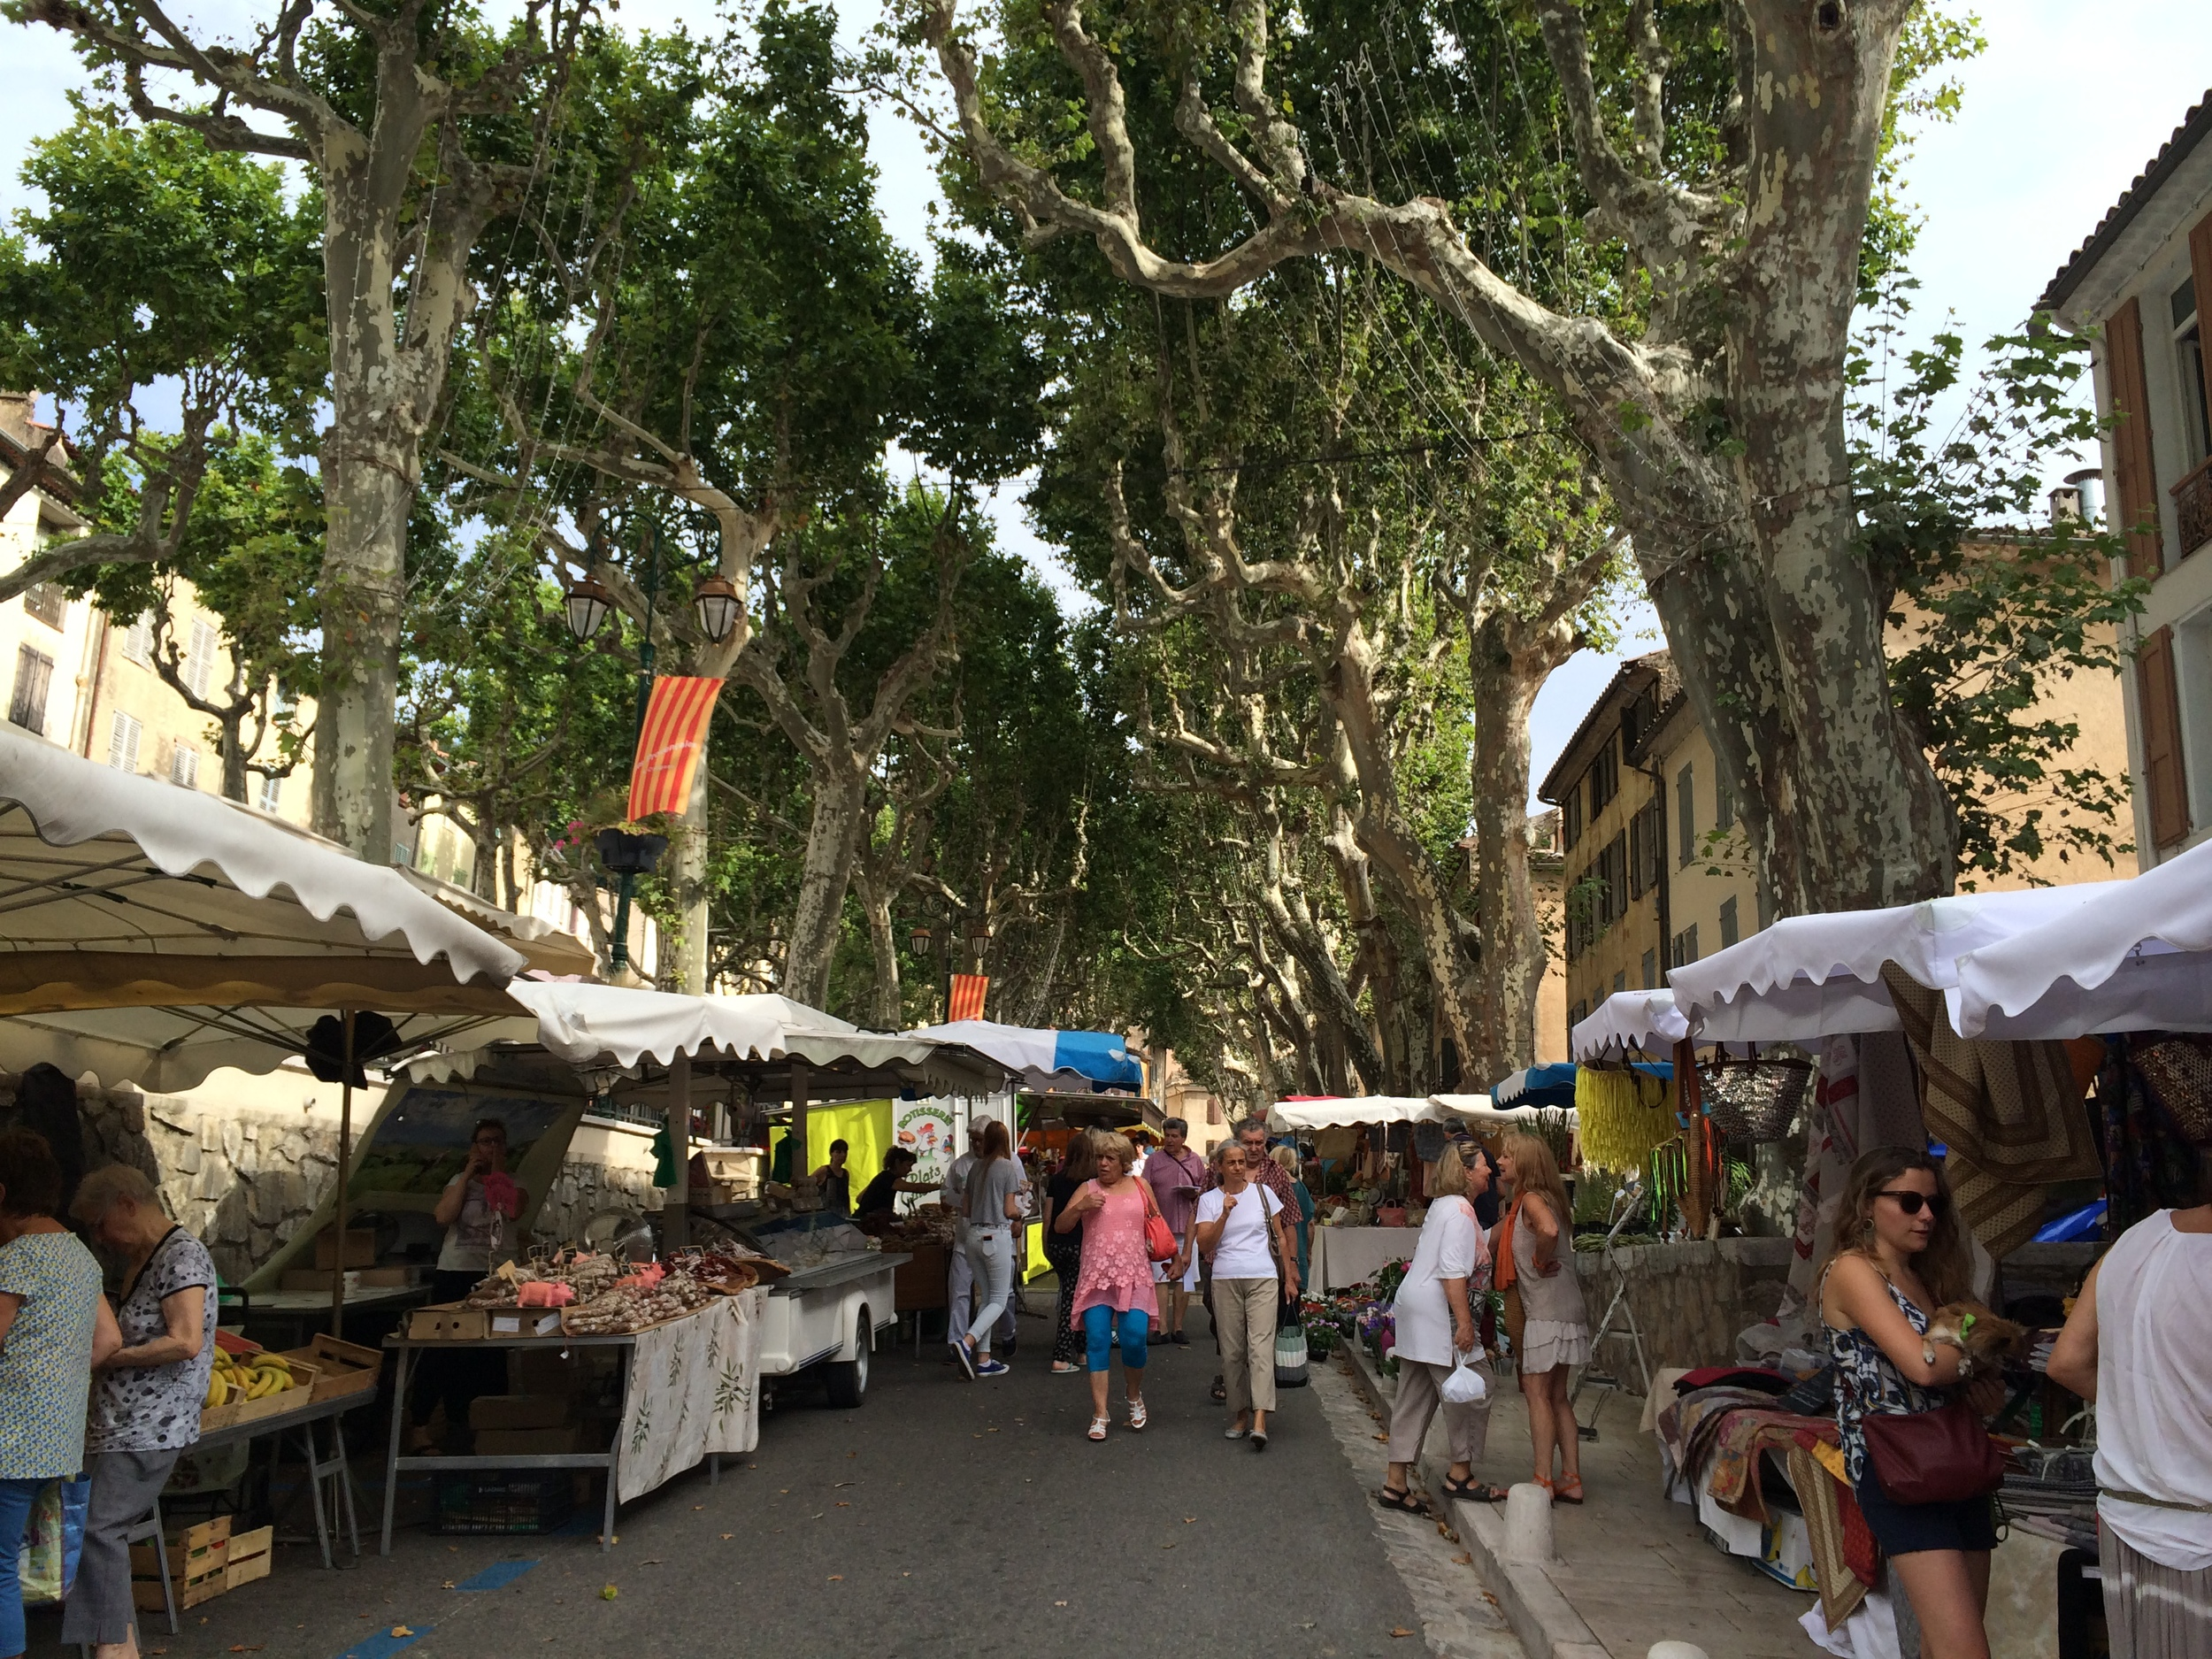 Market Day in Cotignac